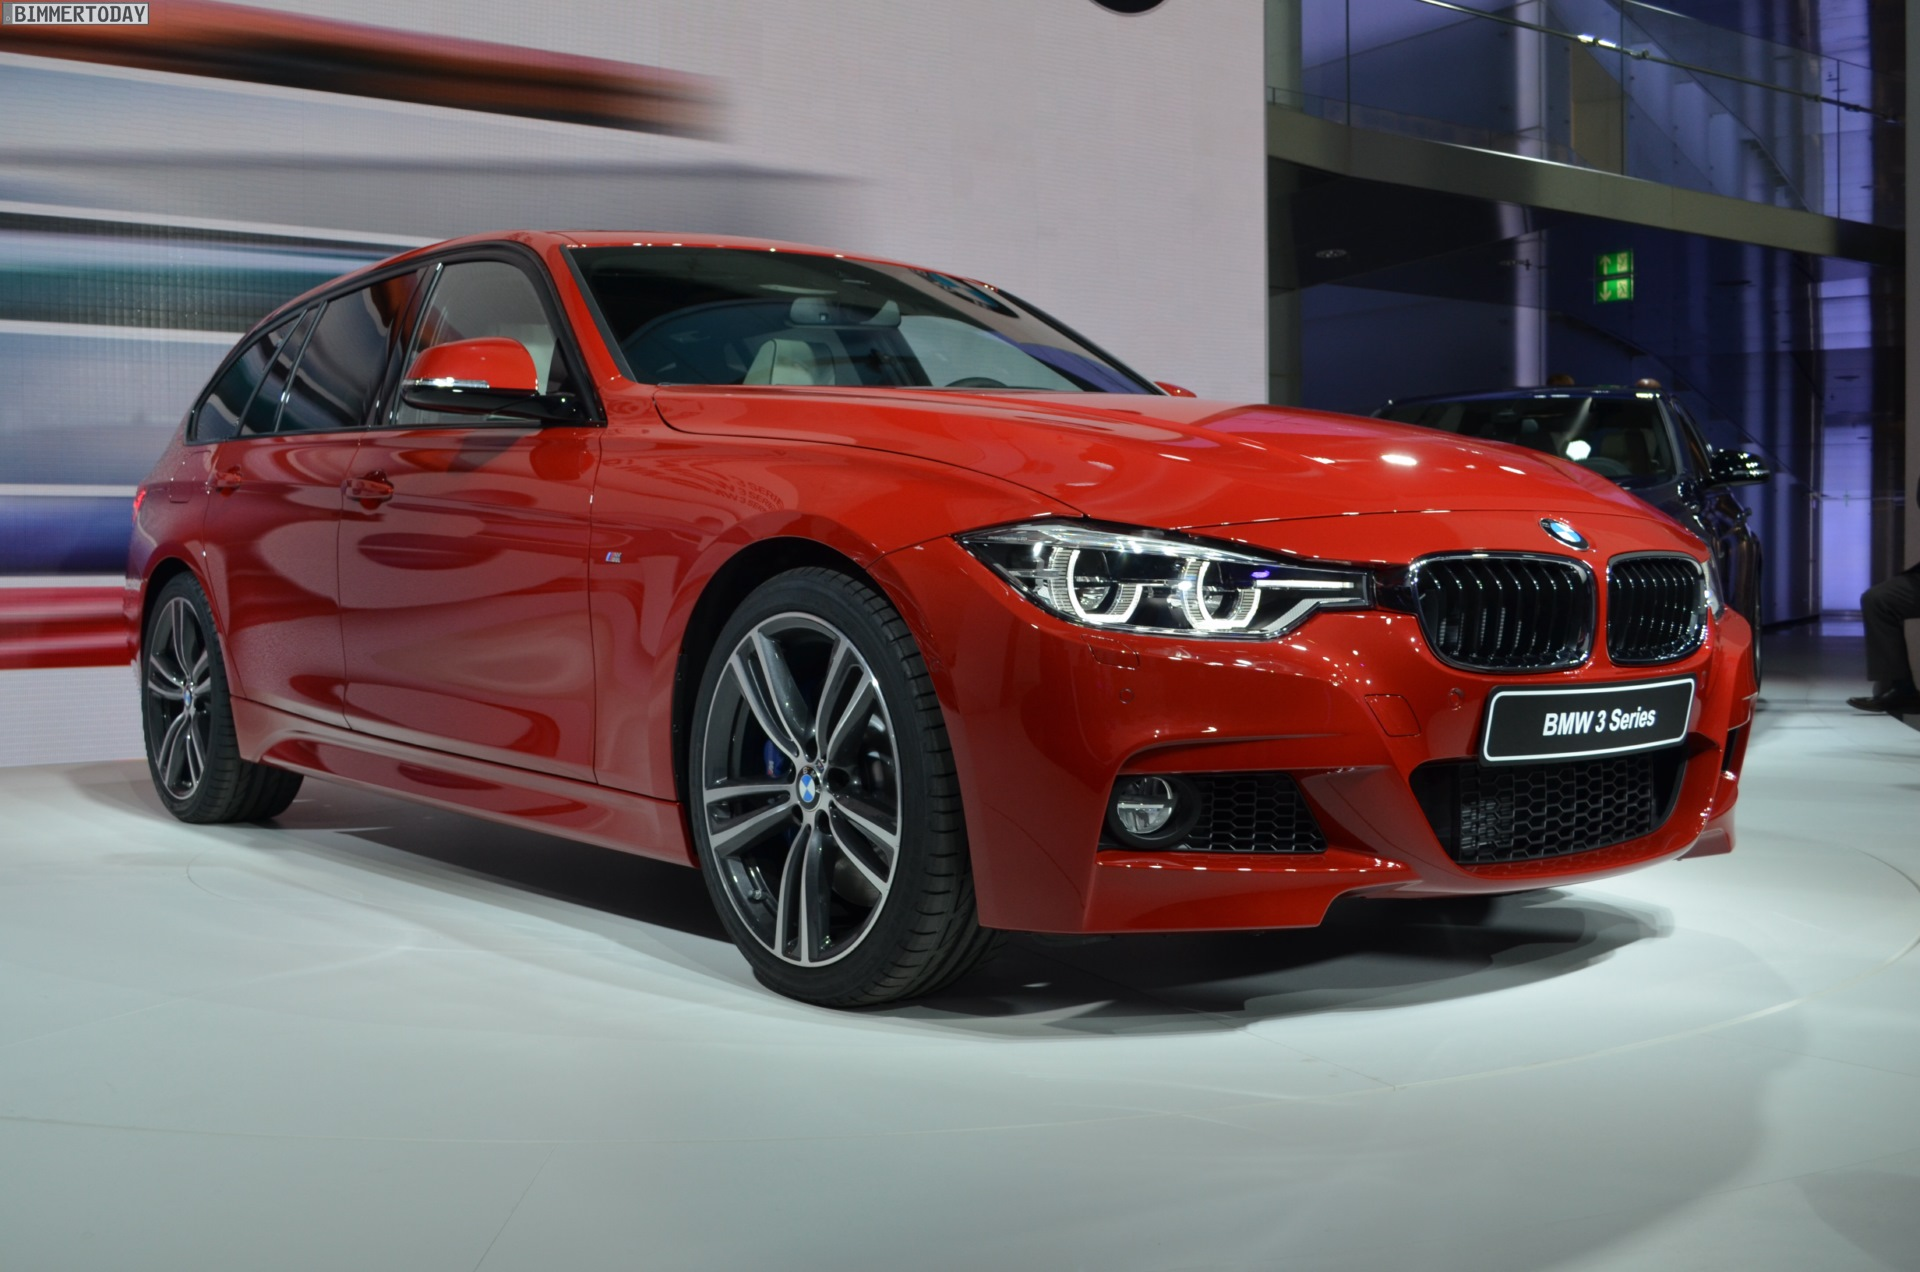 bmw 340i touring with m sport package in melbourne red. Black Bedroom Furniture Sets. Home Design Ideas